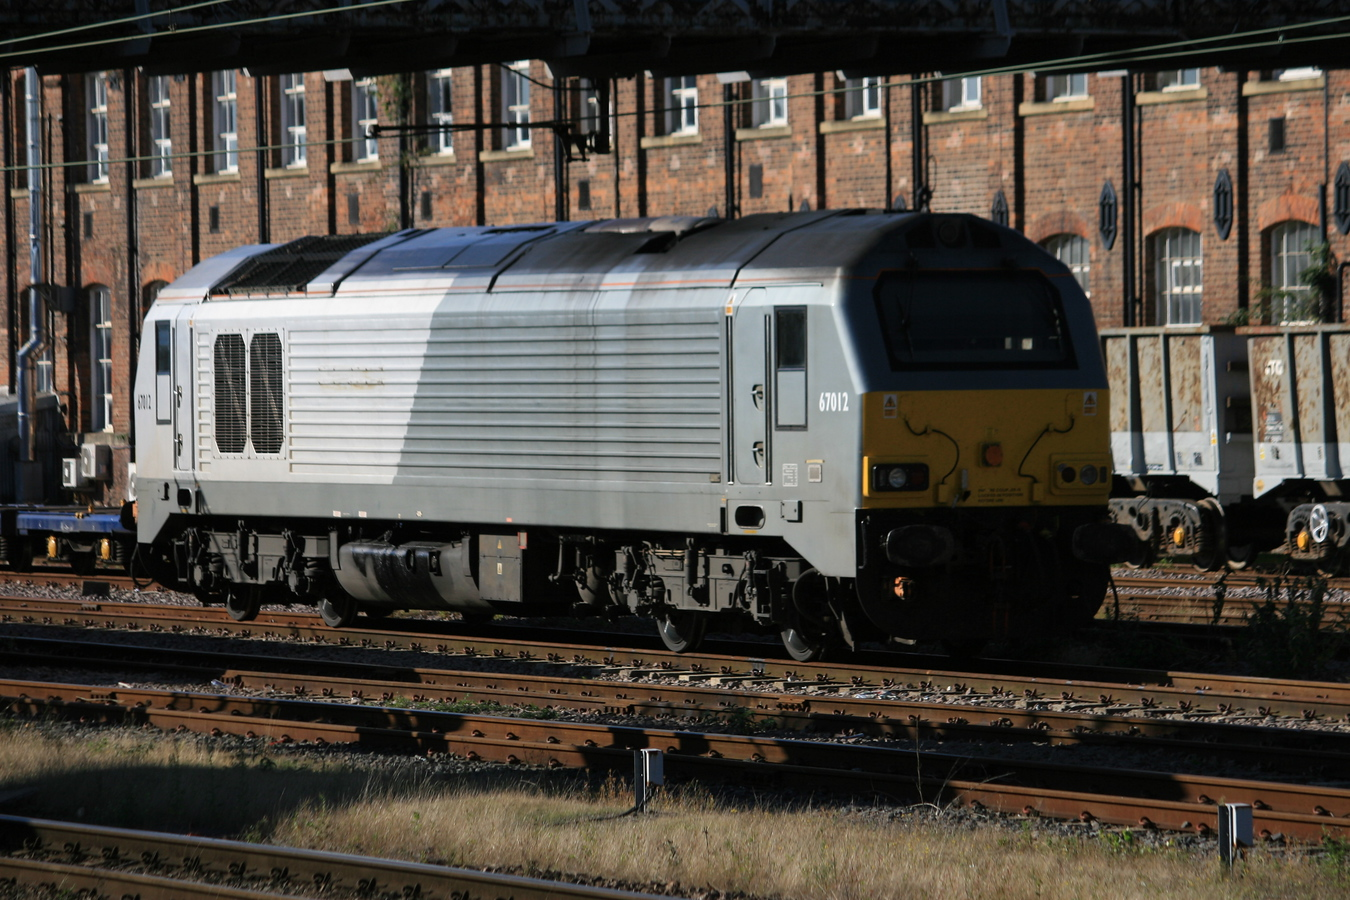 67012_Doncaster_19092015 (29)_DBS